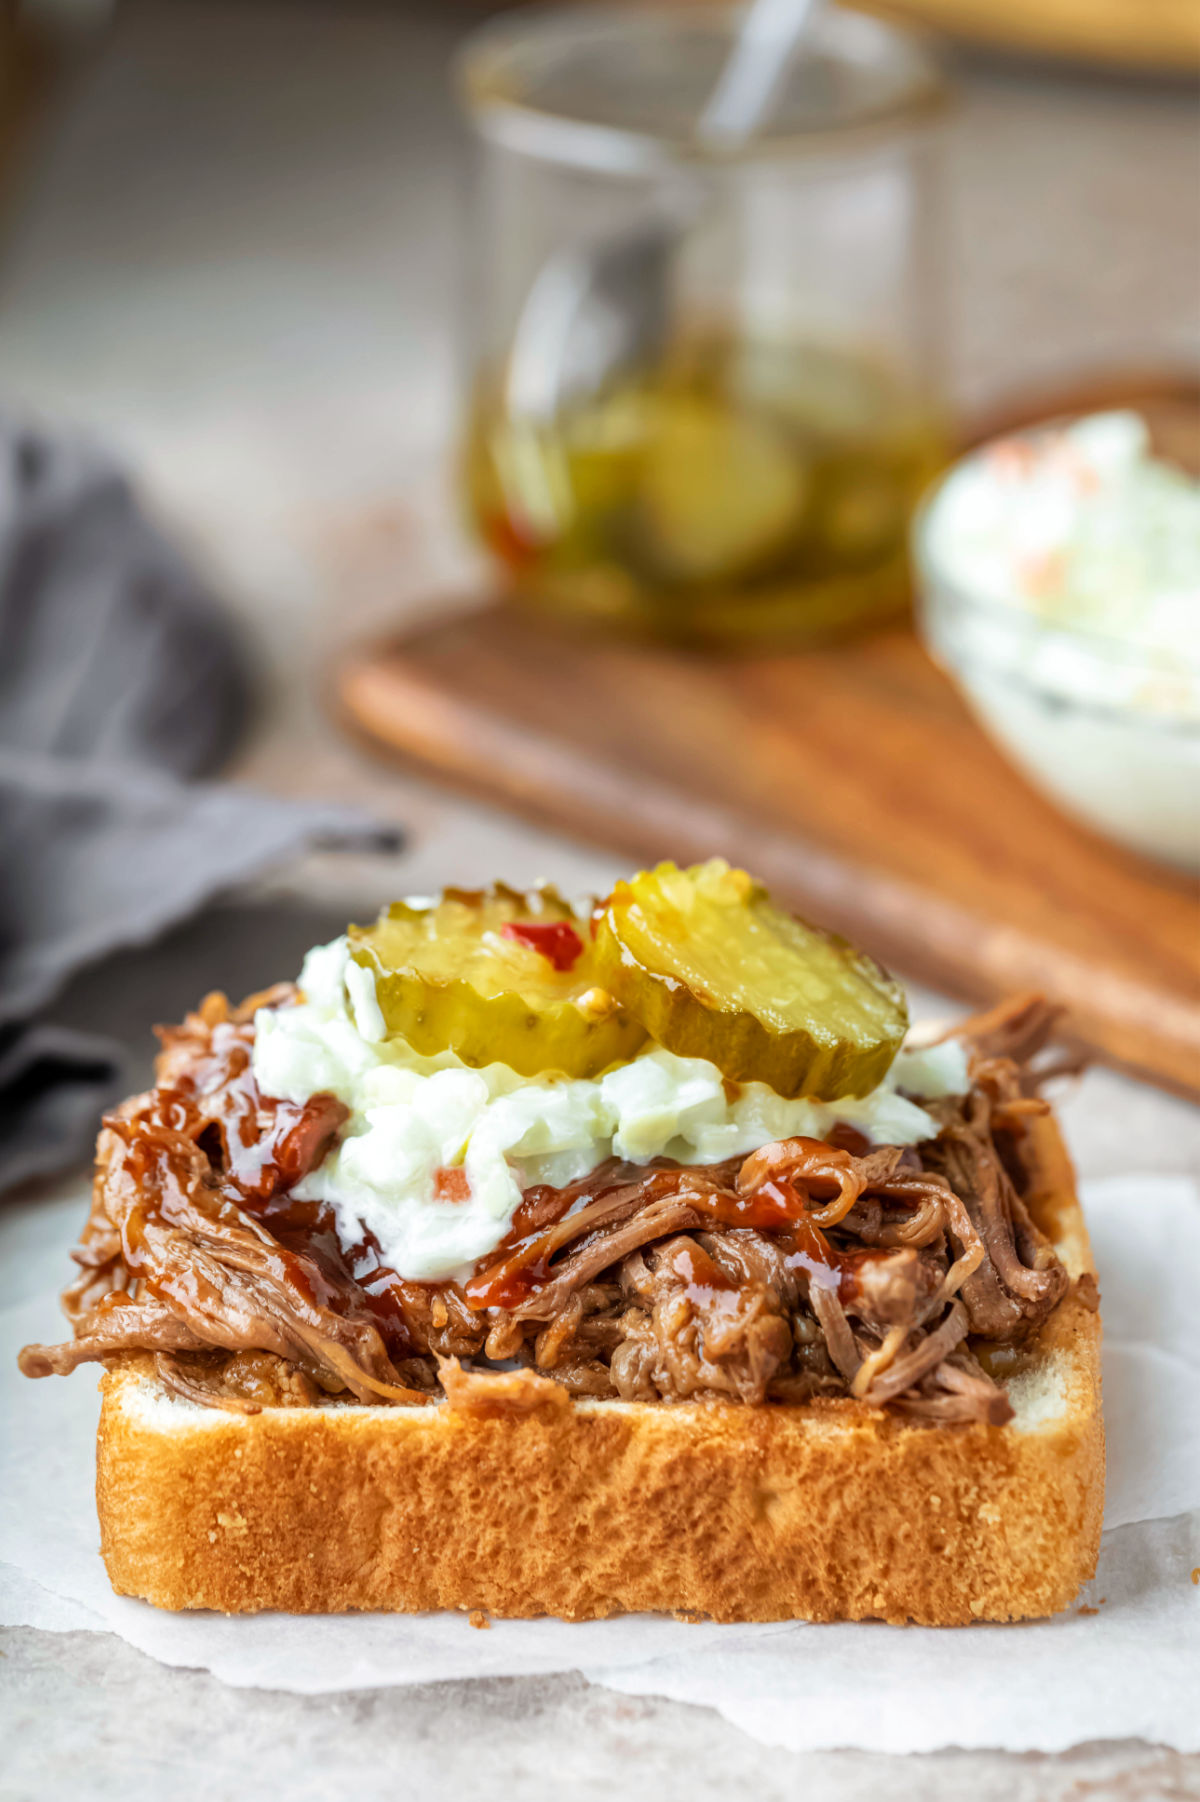 Beef brisket sandwich topped with coleslaw and pickle chips.